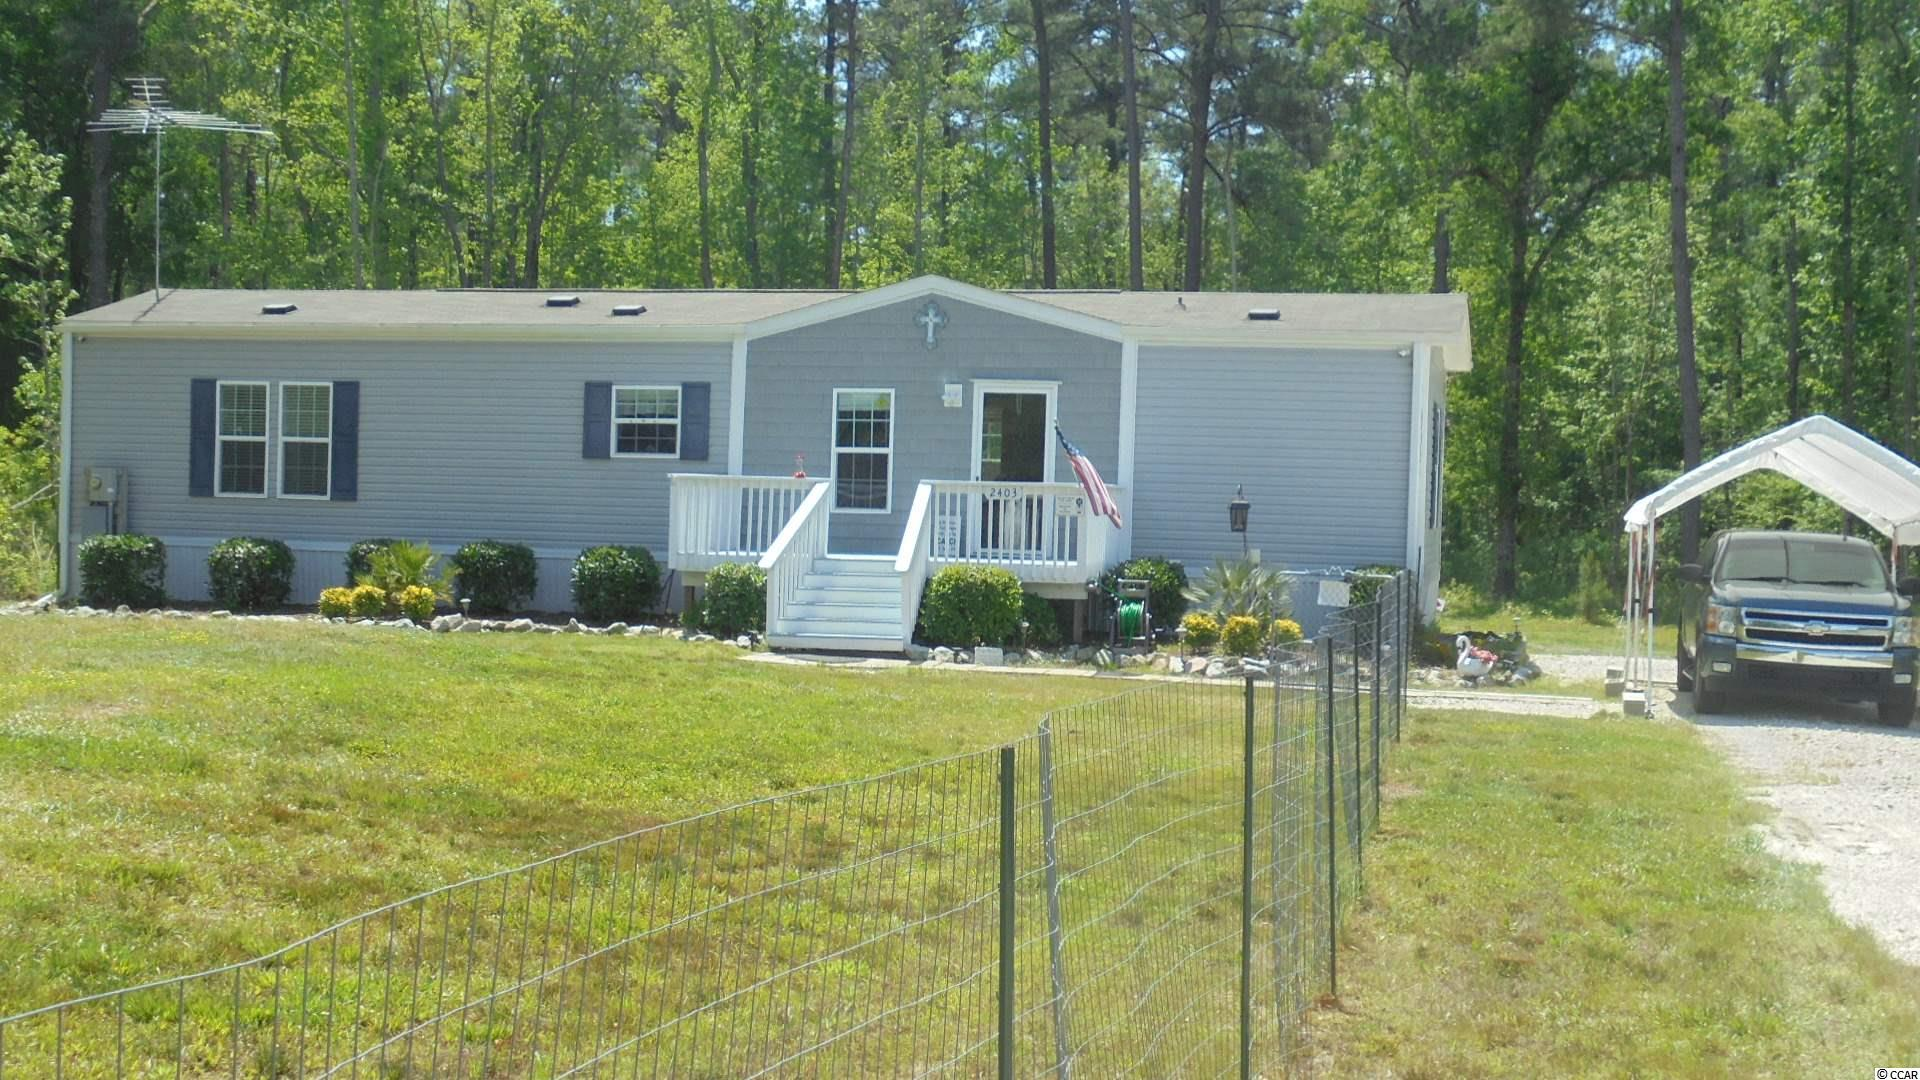 Wonderful country location. This 2017 single wide manufactured home sits on .76 acre of ground. Fenced front yard. Front deck,  covered10 x 16  back deck. Watch the wildlife roam. Hunter ceiling fans in both bedrooms and living room,10ft ceilings, blinds, gutters, Vinyl and carpet flooring. Easy access to town, river, and the beaches. NO HOA fees or deed restrictions here. This is a terrific place to call home. Carport stays.